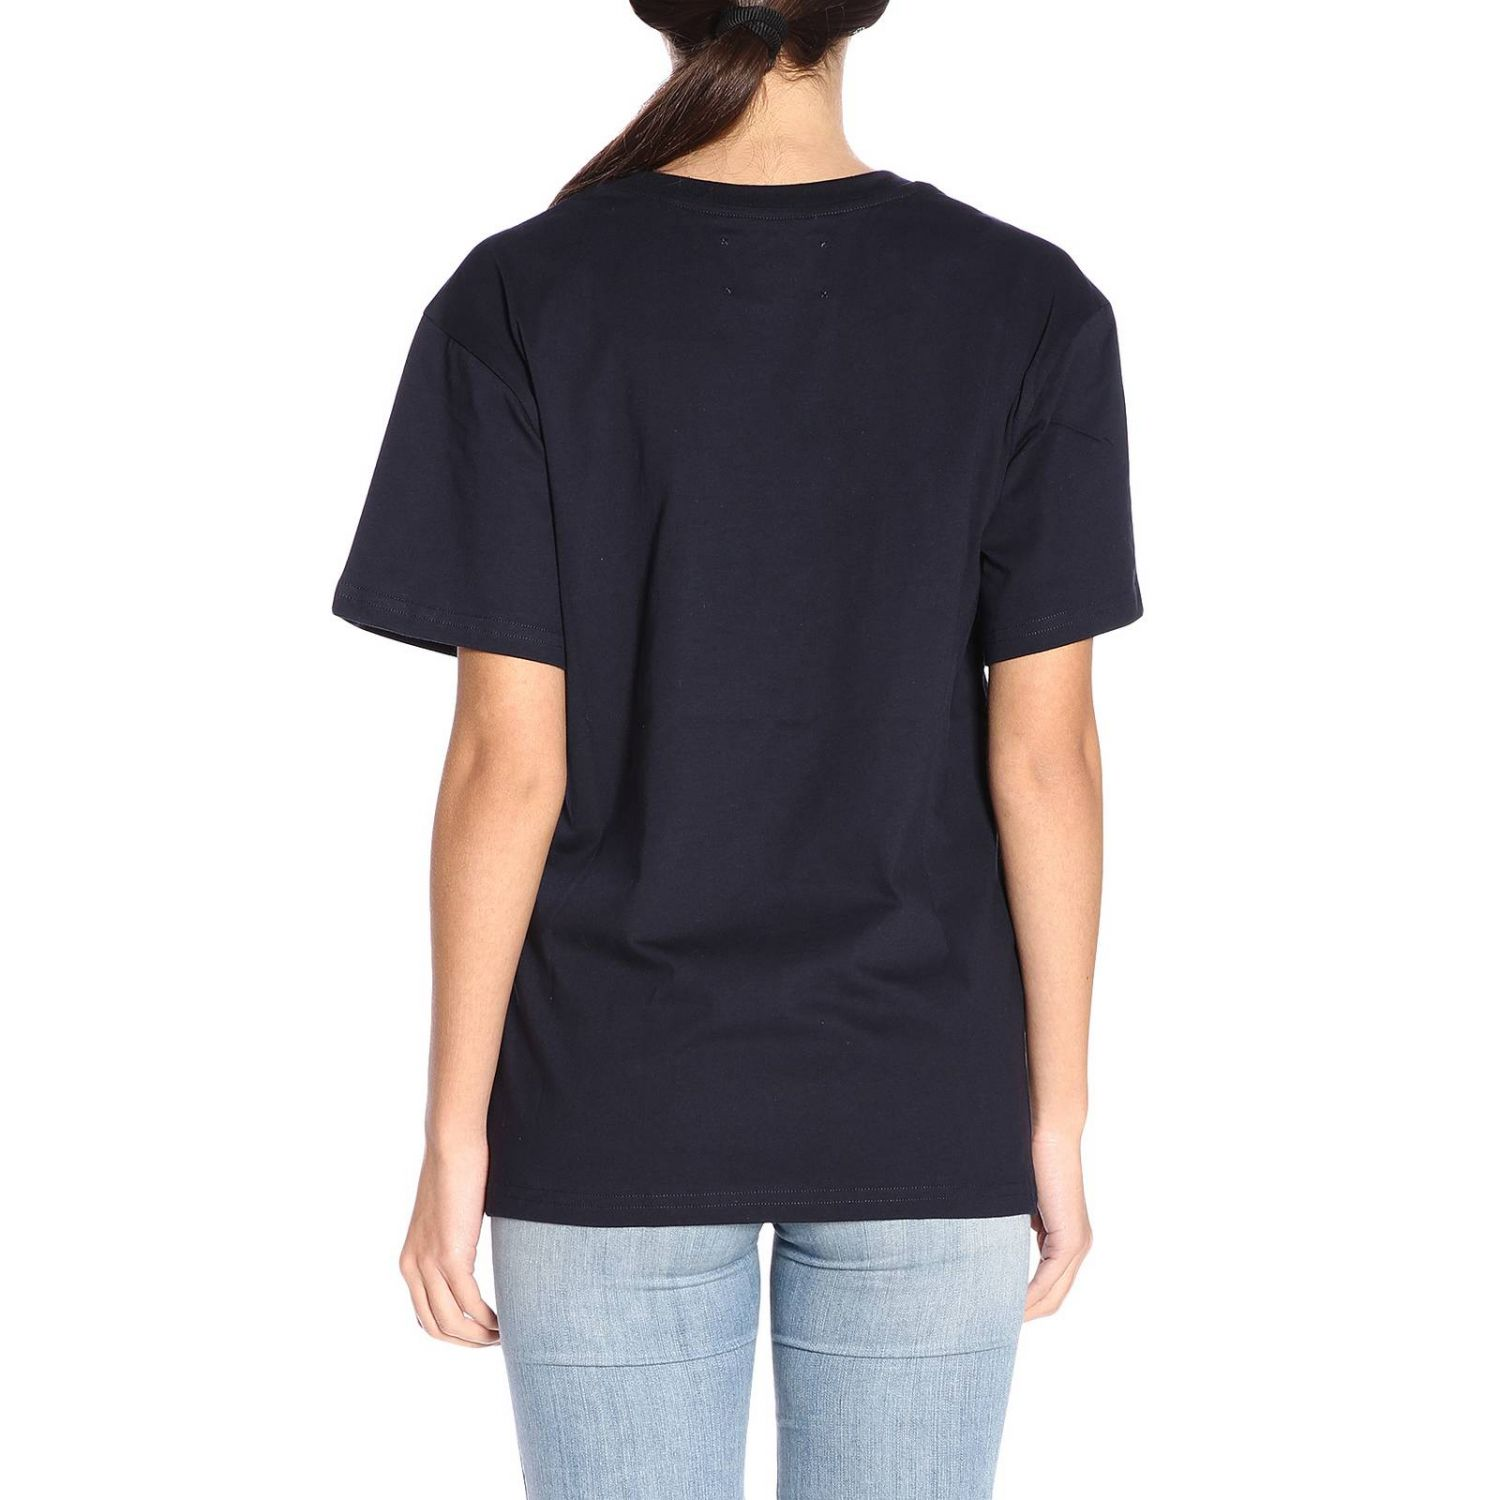 T-shirt women Alberta Ferretti blue 3